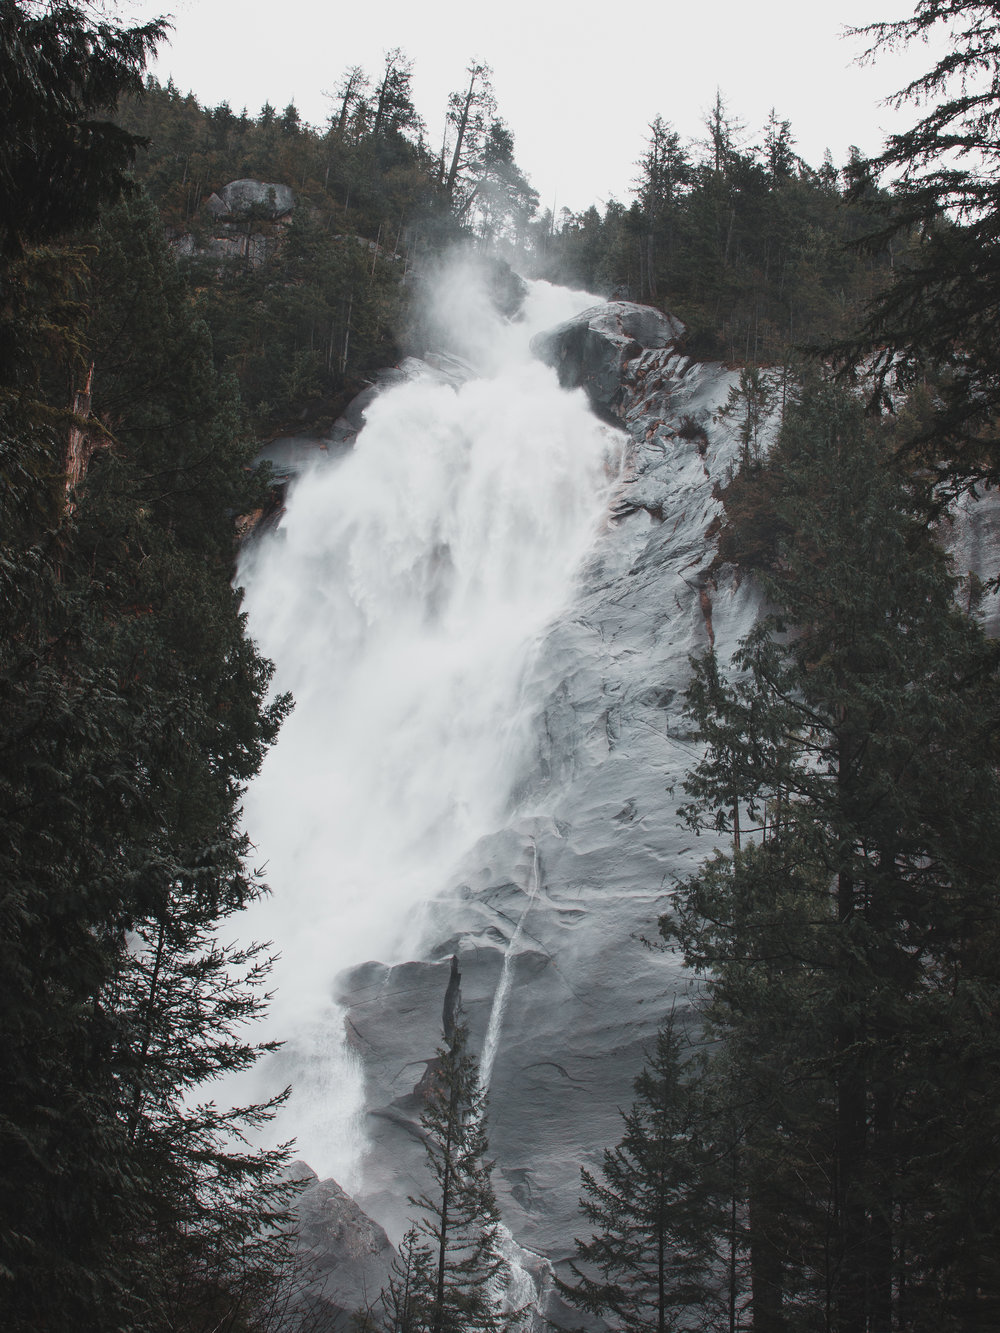 If you're staying in Squamish you definitely need to check out Shannon Falls